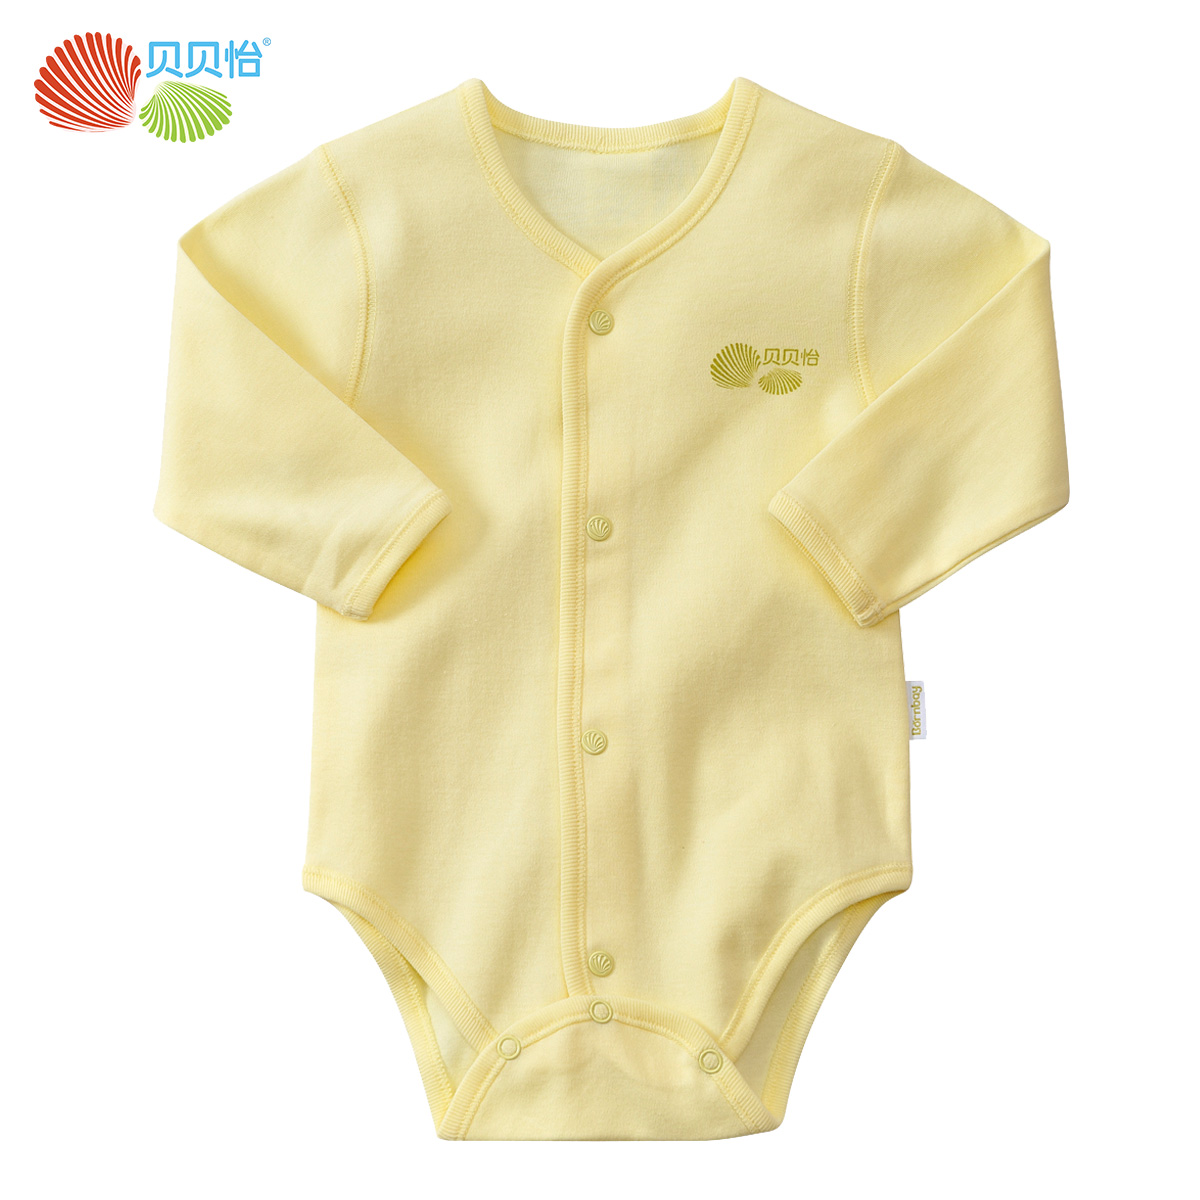 Beibei yi baby clothes for men and women long sleeve cotton baby triangle romper newborn baby coveralls climbing clothes BB711